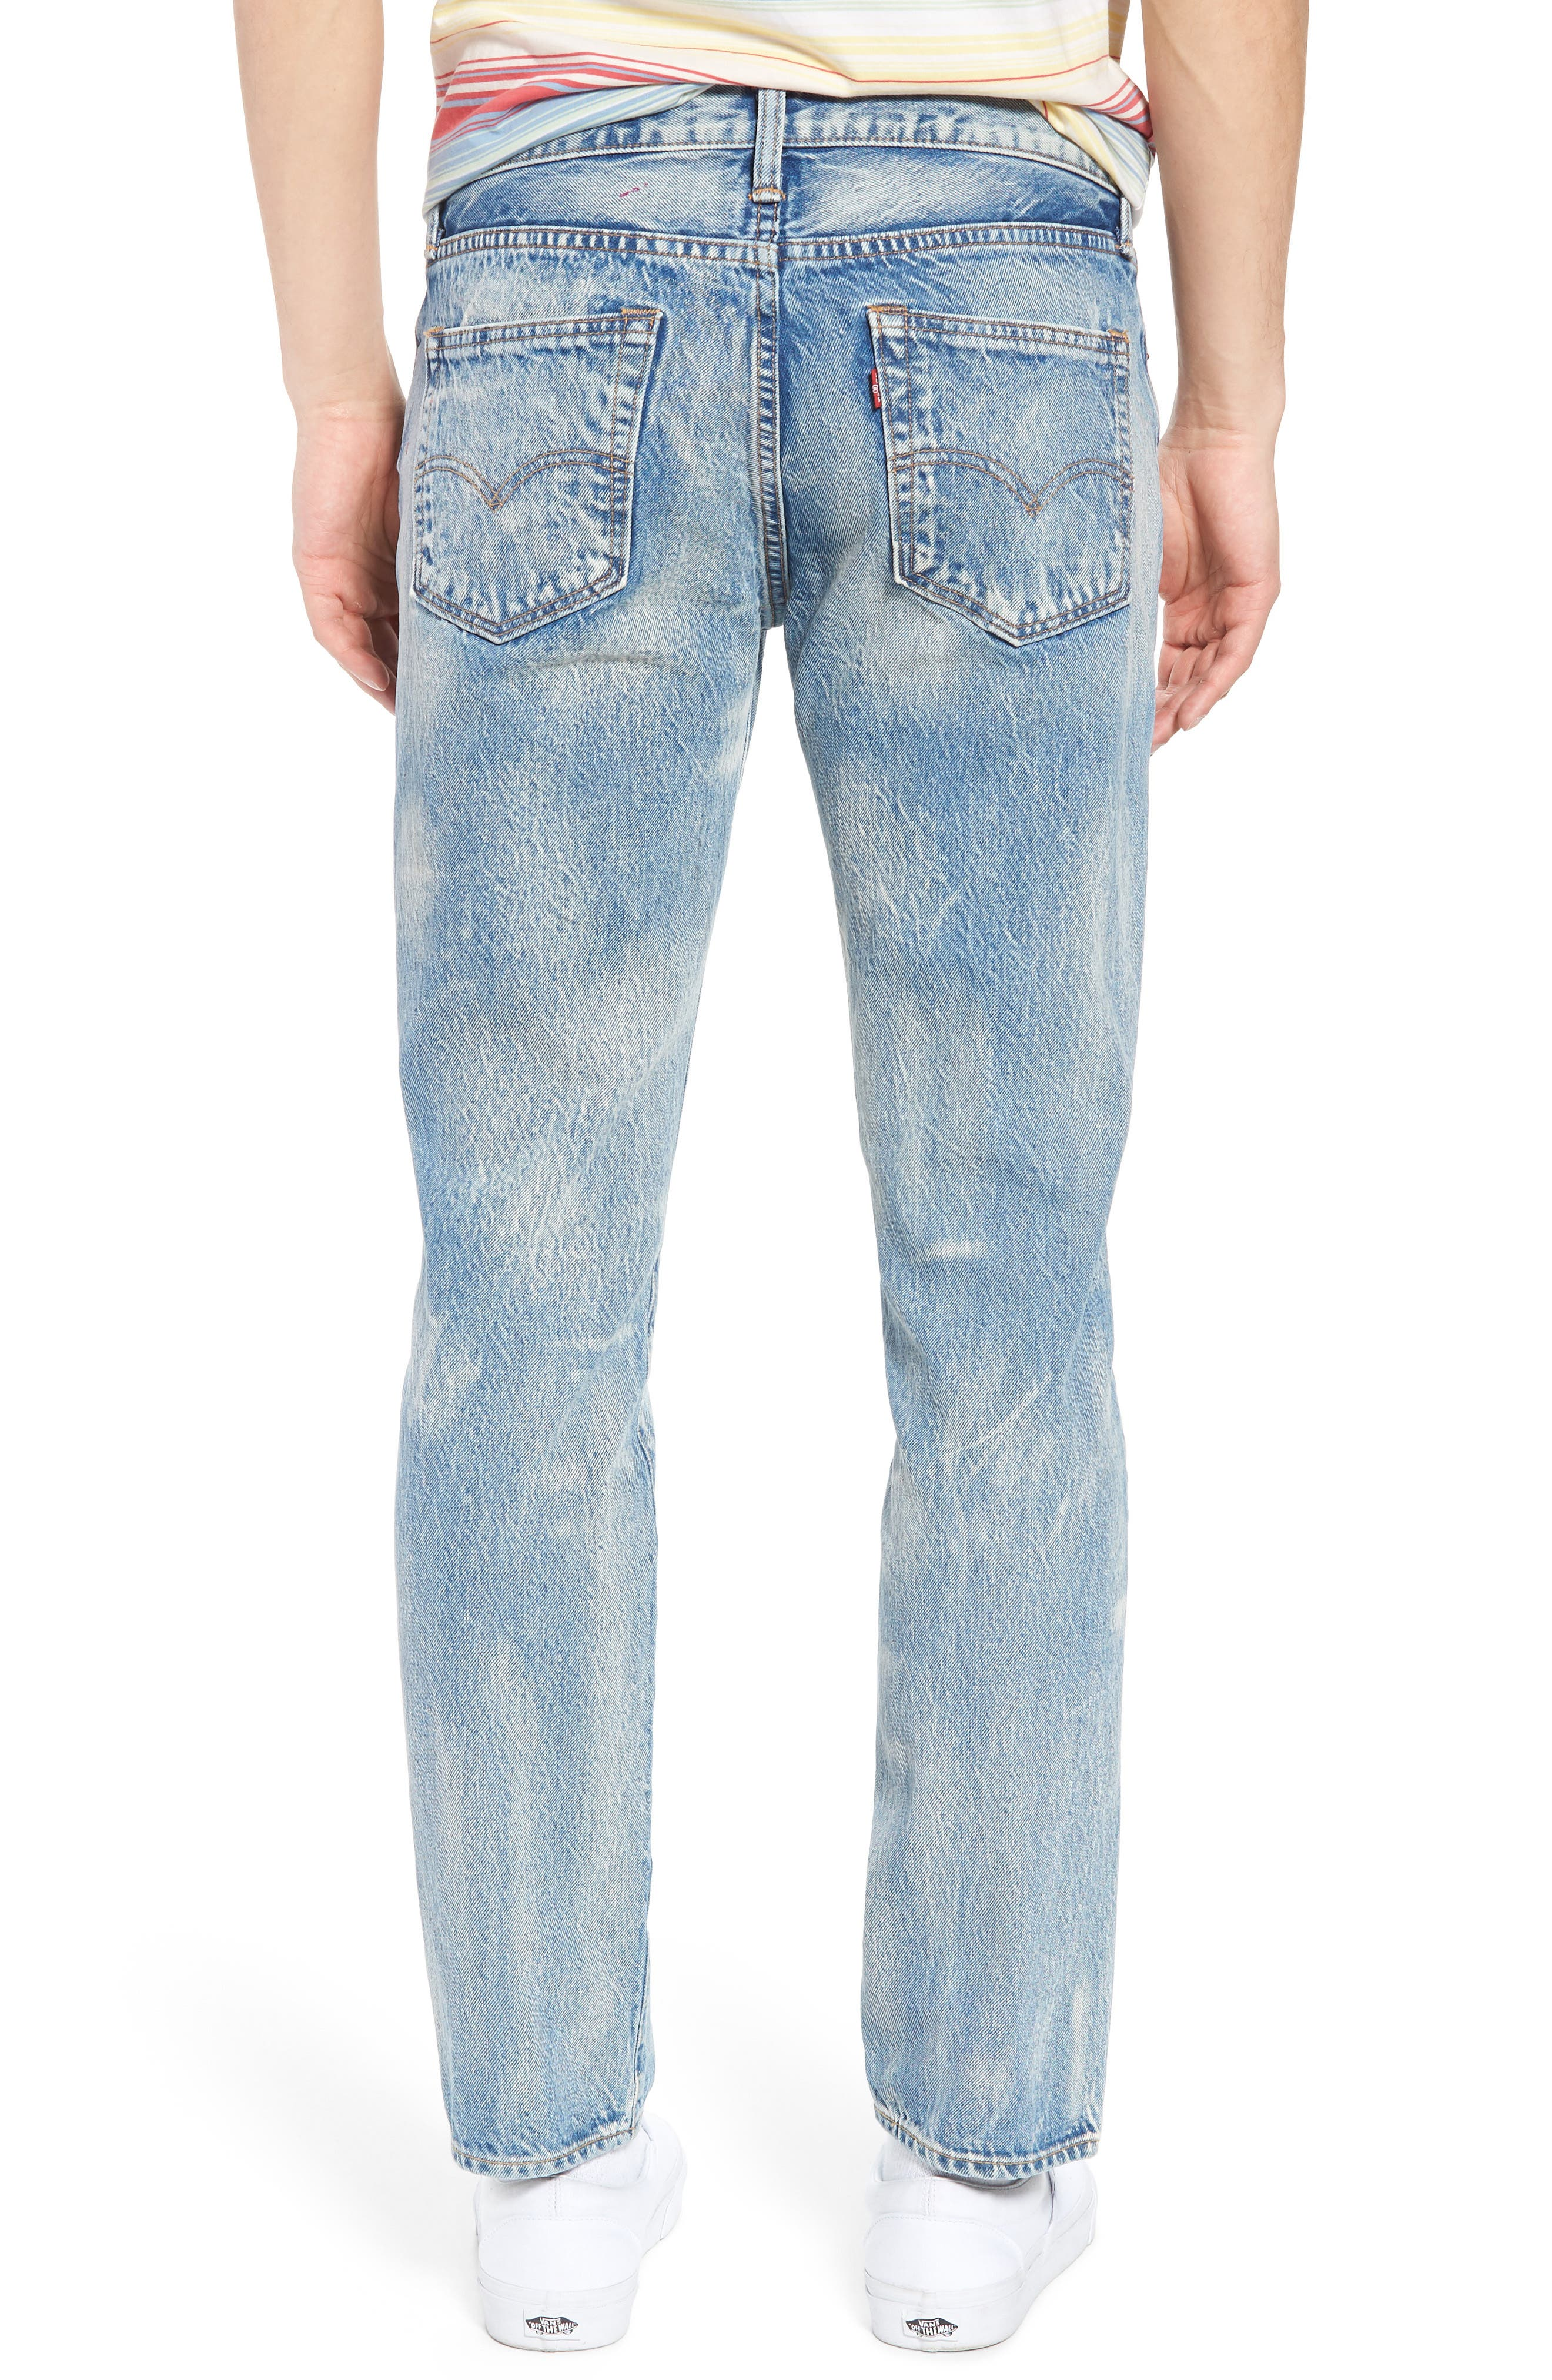 510<sup>™</sup> Skinny Jeans,                             Alternate thumbnail 2, color,                             Rolled Up Dollar